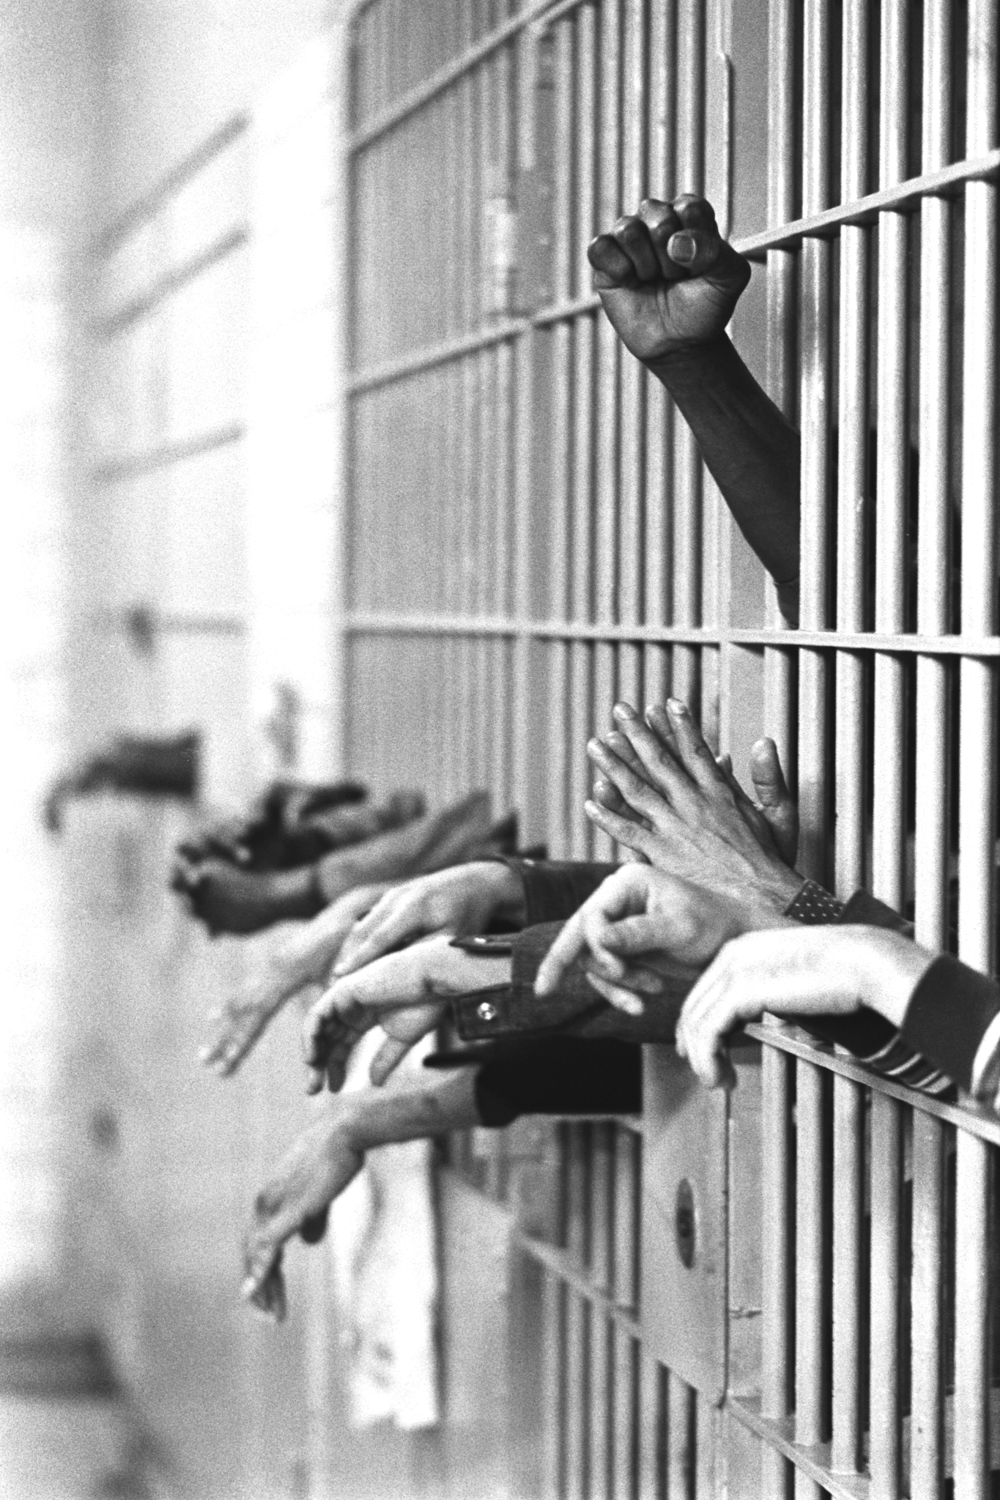 Hands from behind the bars at Tombs Prison, built in 1840 with granite from the old Bridewell Prison in City Hall. September 28, 1972.  © Jean-Pierre Laffont